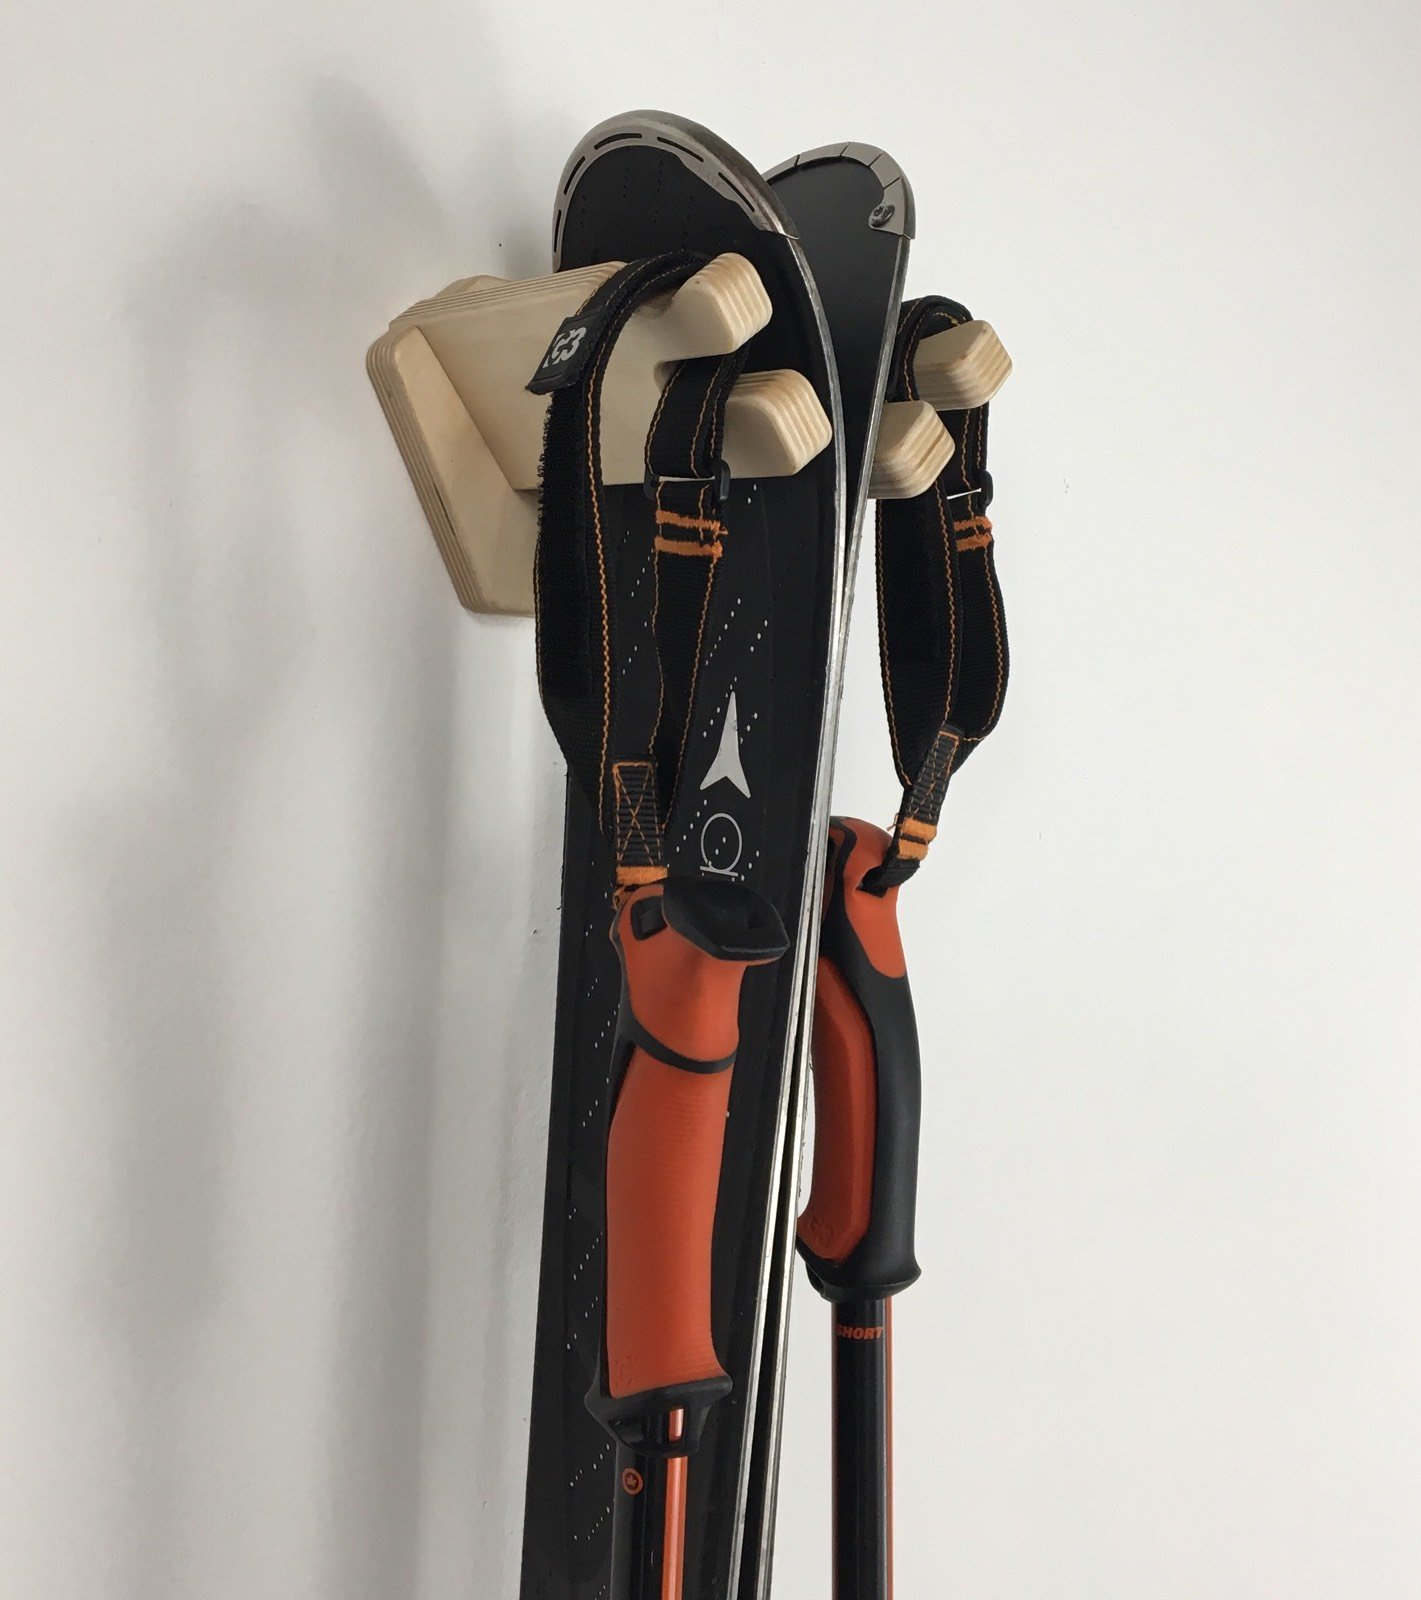 Veritcal Single Ski Wall Rack by Pro Board Racks